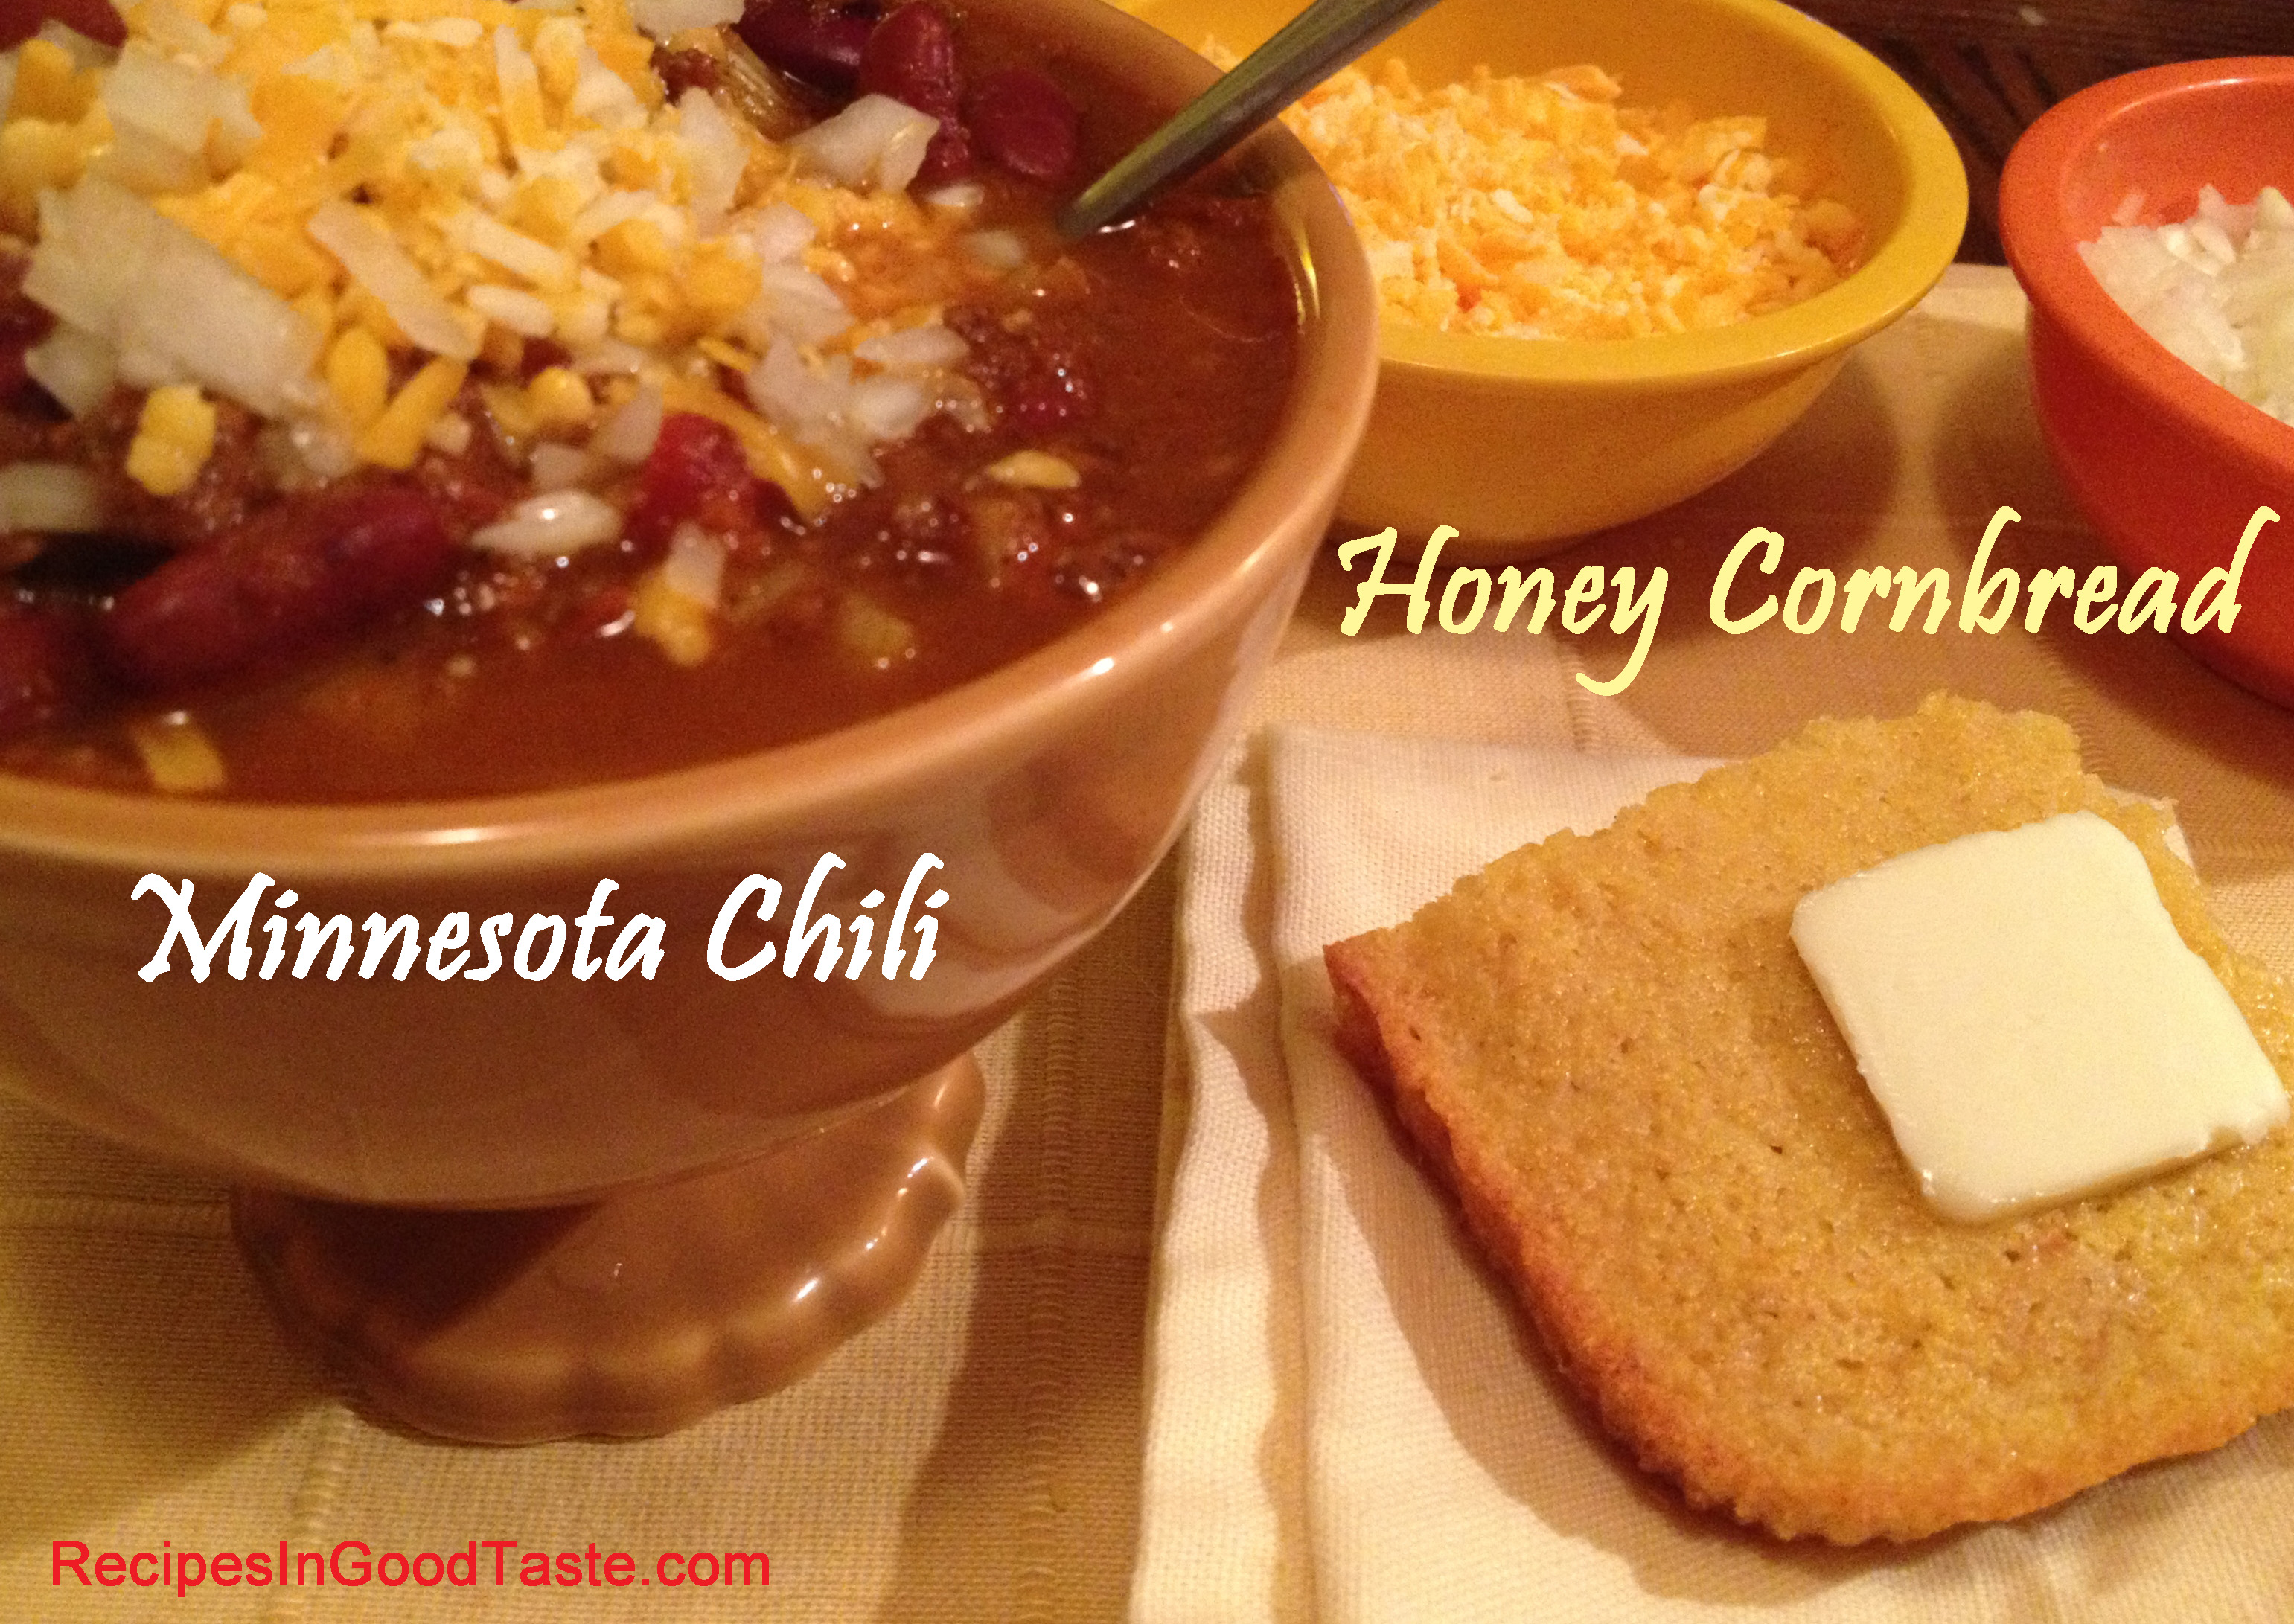 Recipes in good taste delicious comfort food recipe blog pam this is one of the best cornbread recipes ive made so far its simple and delicious i love the crusty sweet texture and its beautifully paired with my forumfinder Images